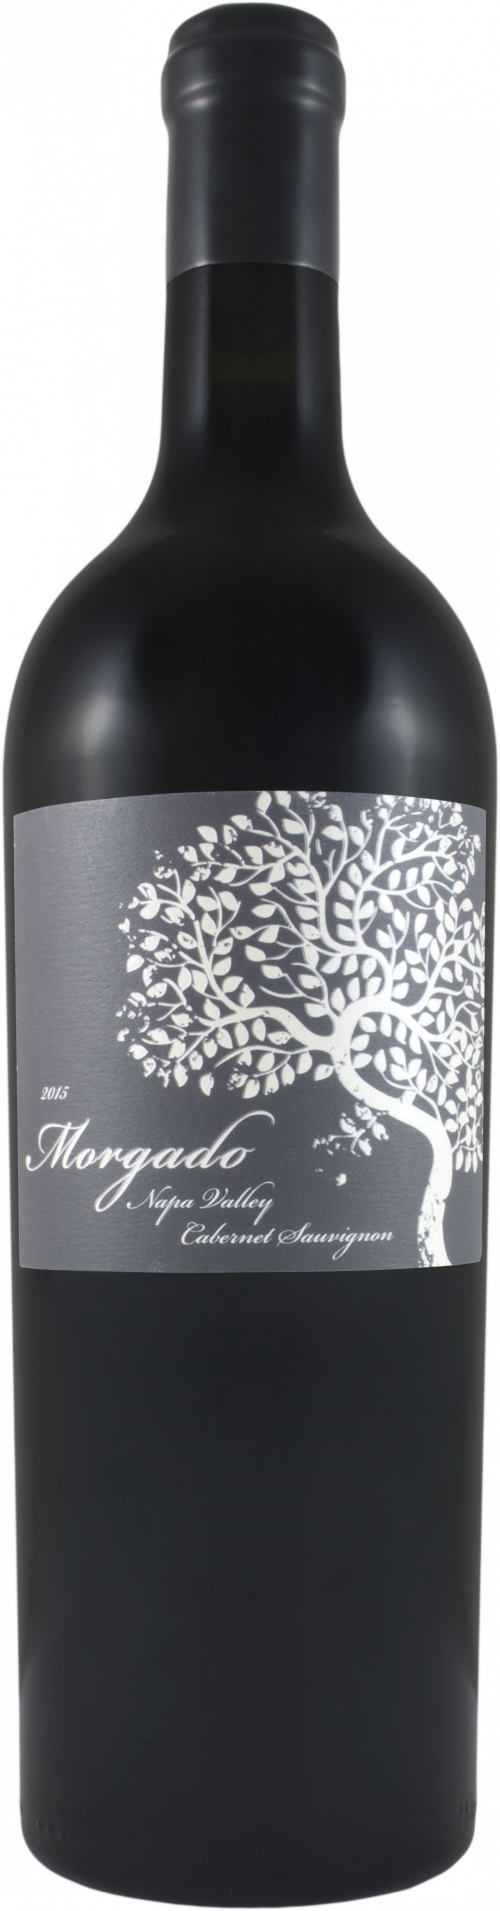 2014 Morgado Napa Valley Cabernet Sauvignon 750Ml